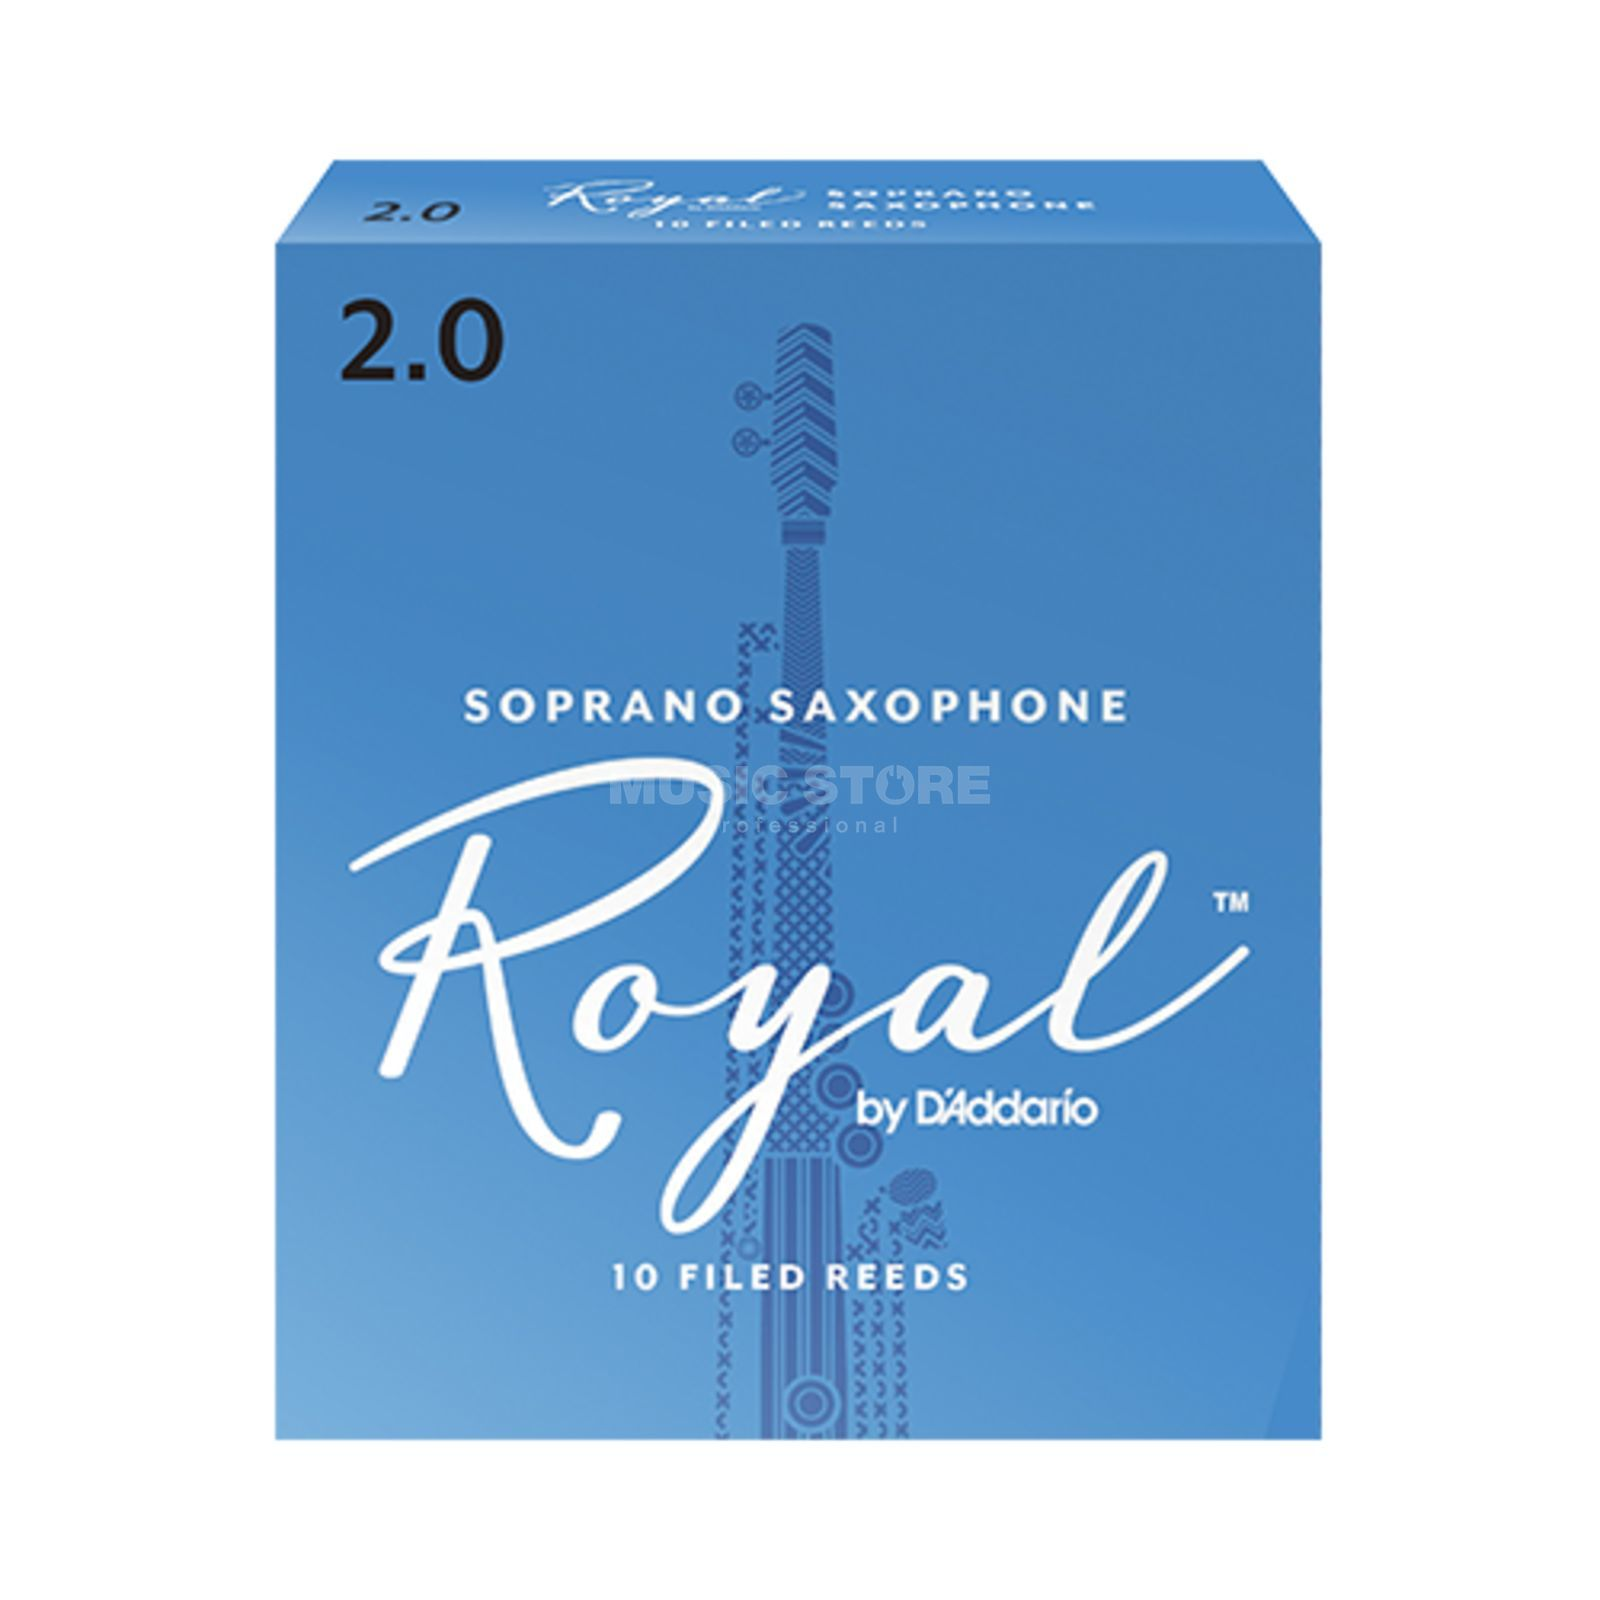 D'Addario Woodwinds Soprano Saxophone Reeds 2 Box of 10 Изображение товара